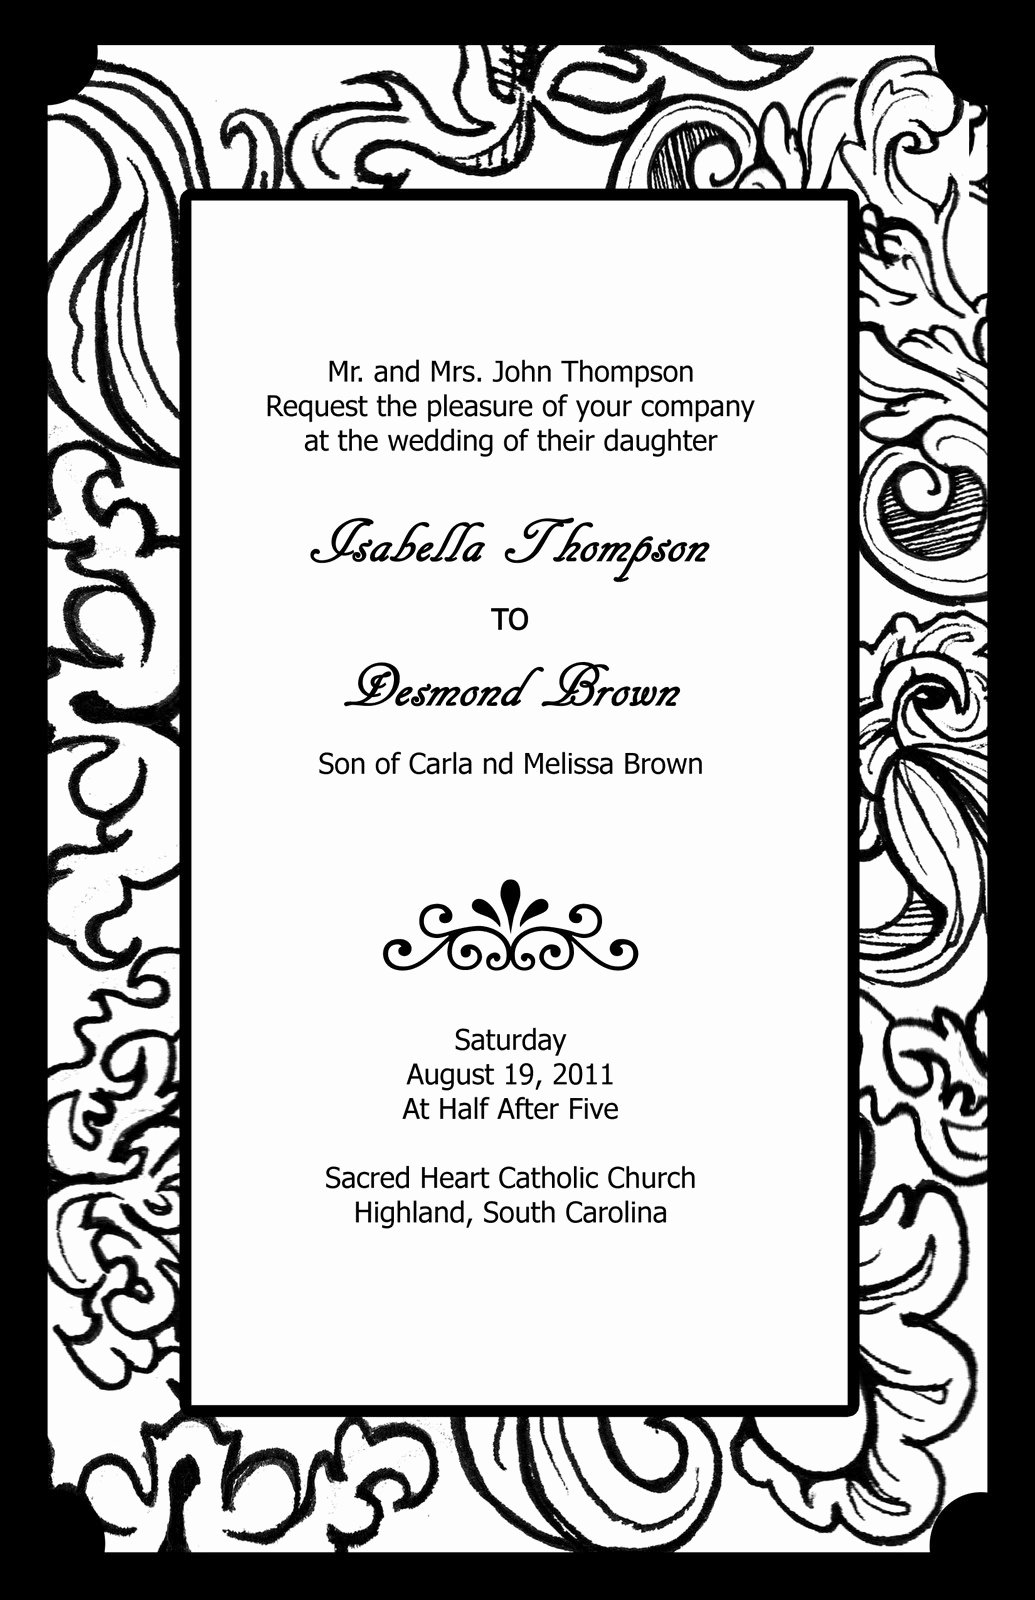 Gold Wedding Invitations Black and White Invi with Black